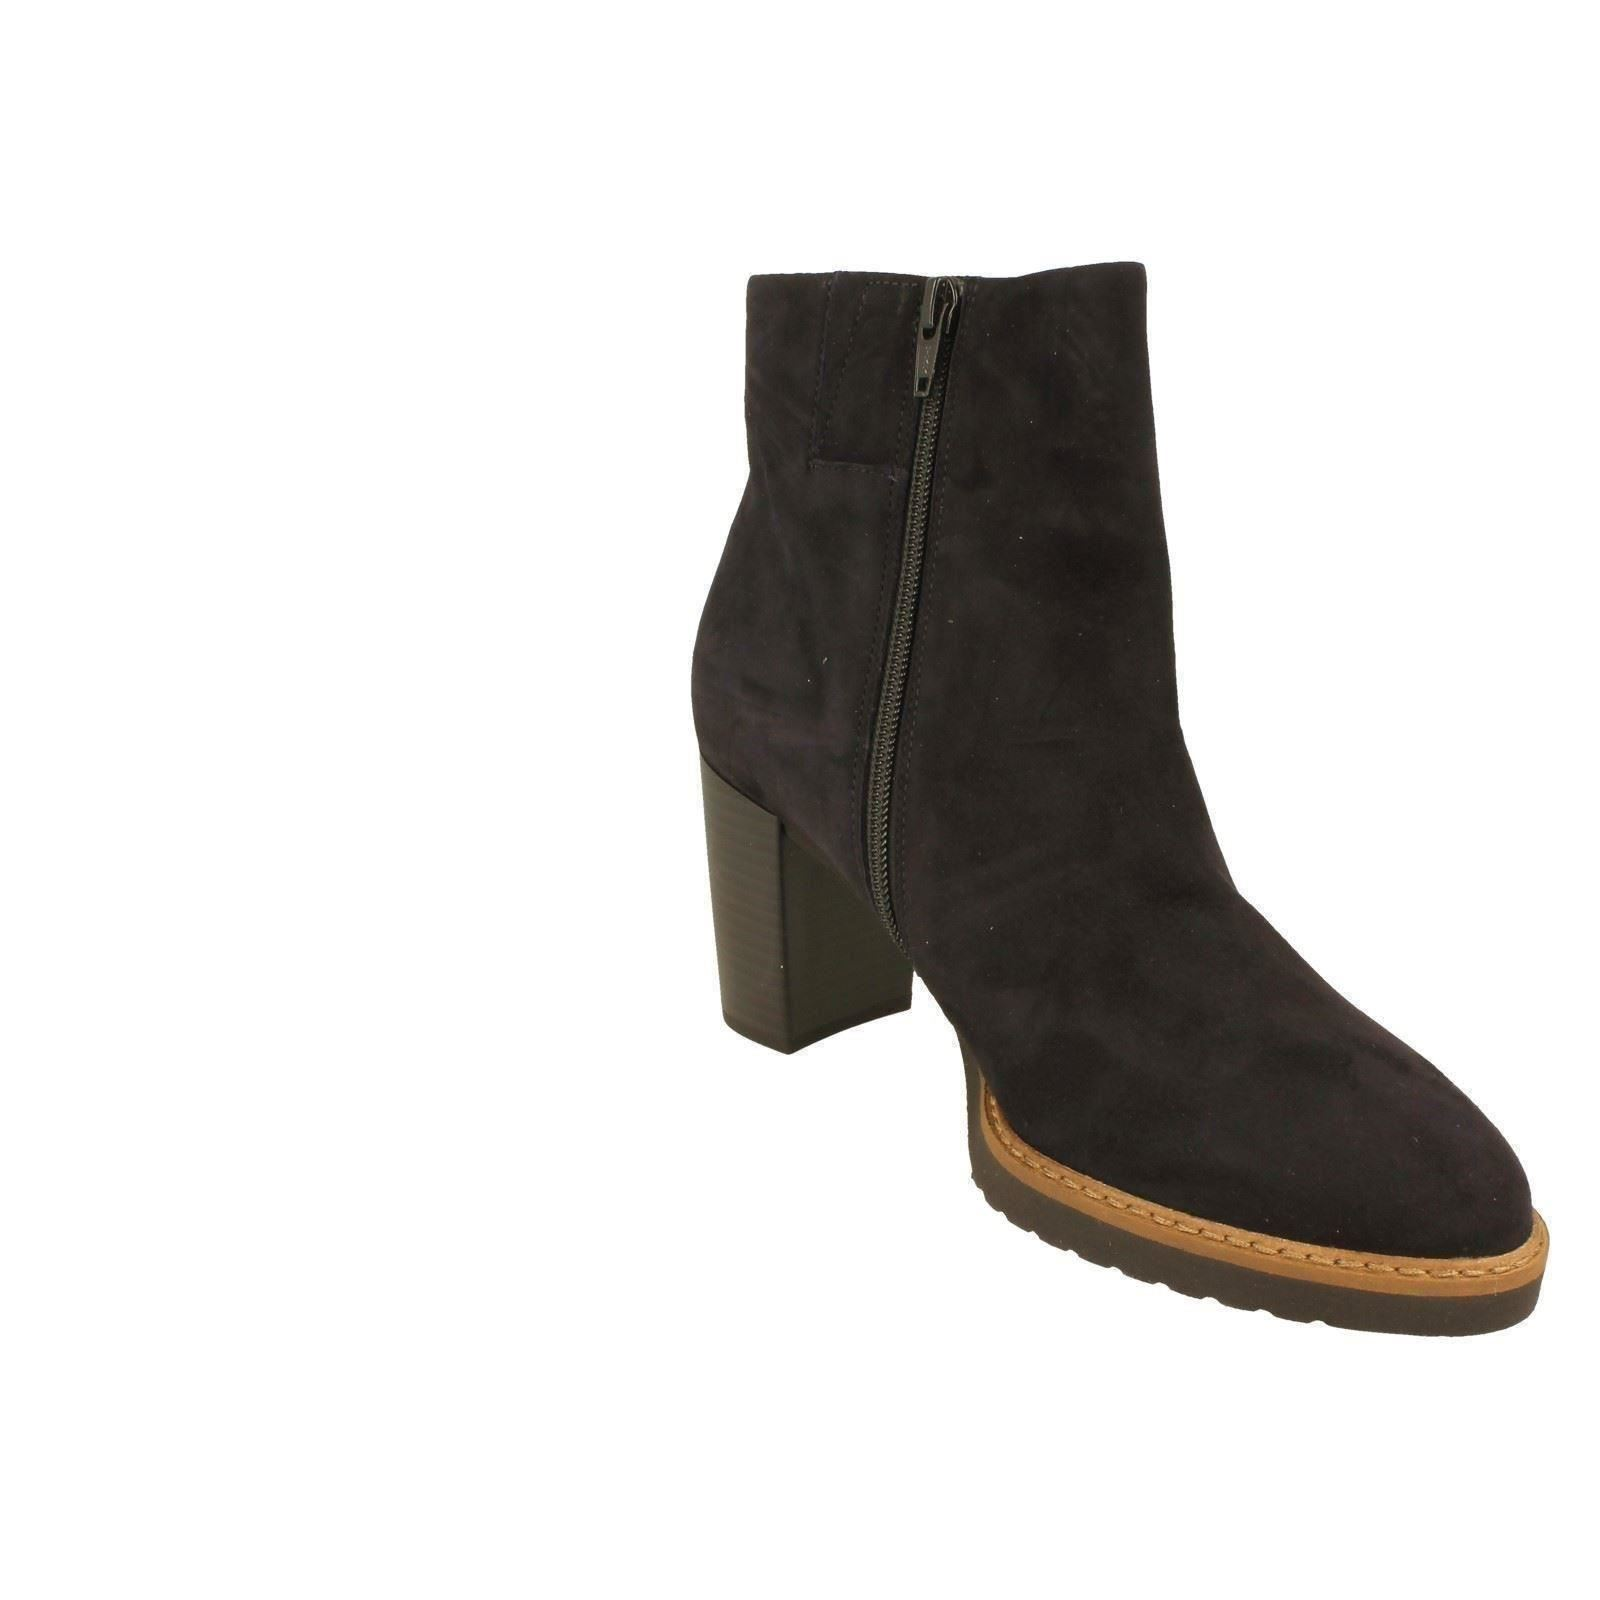 Womens Thigh Thigh Womens High Over the Knee Boots Suede Leather Cuban Heel Warm Lined Shoes 69dd8b